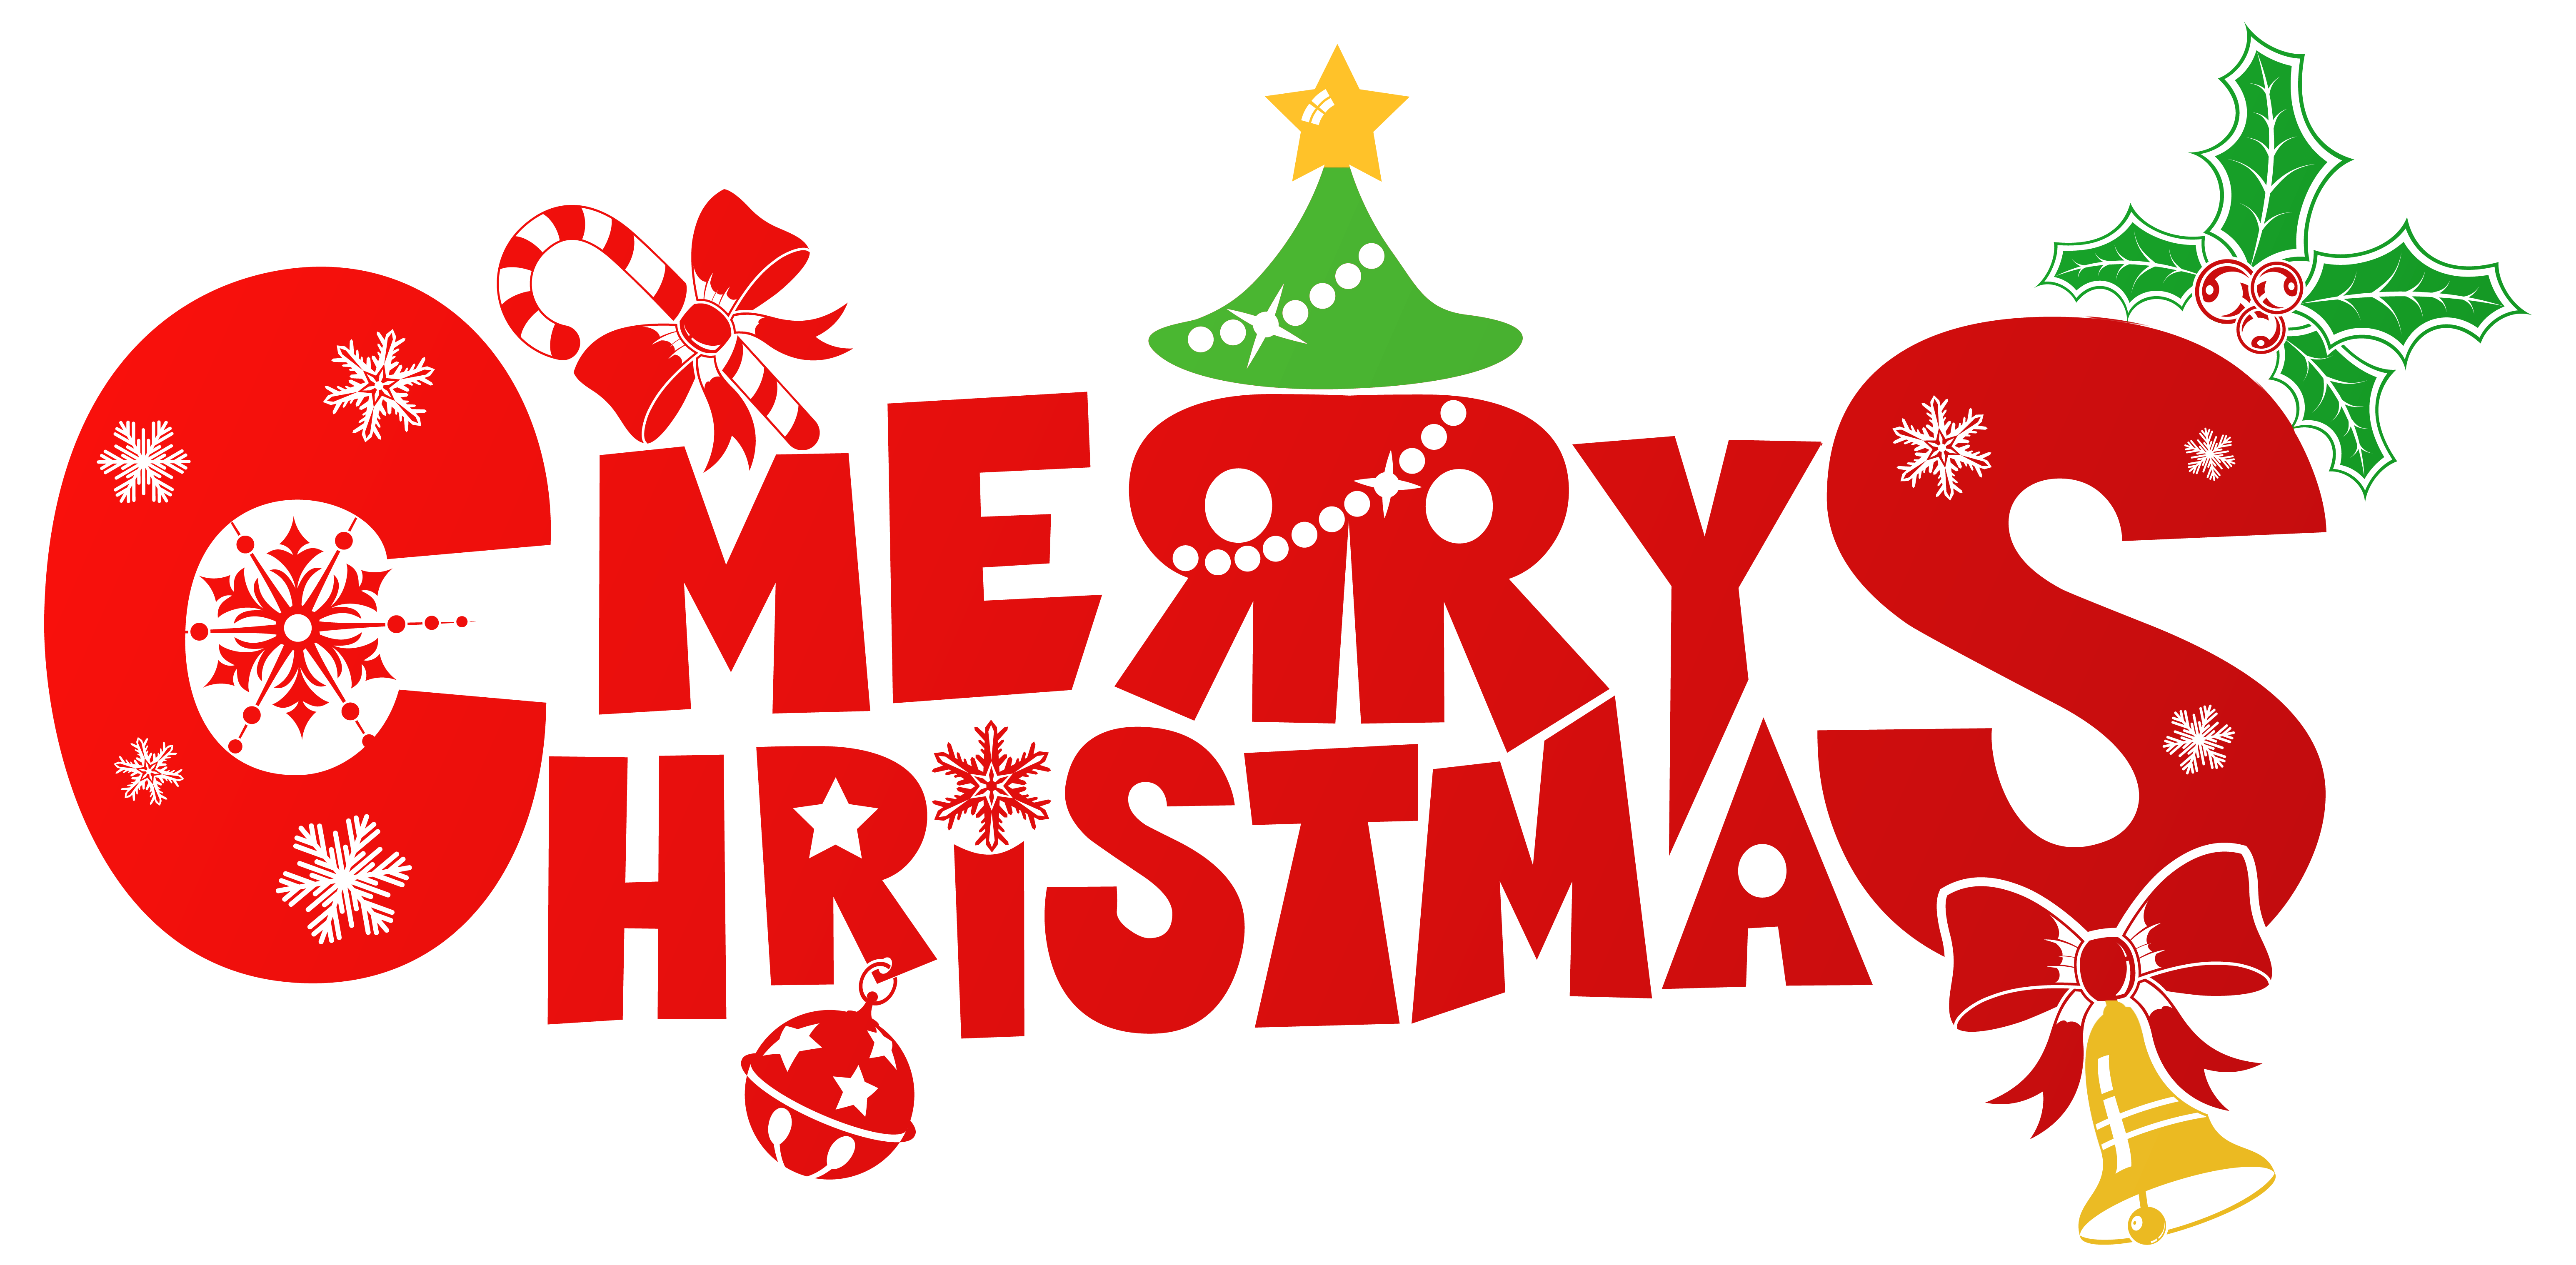 Red merry clipart image. Christmas png images